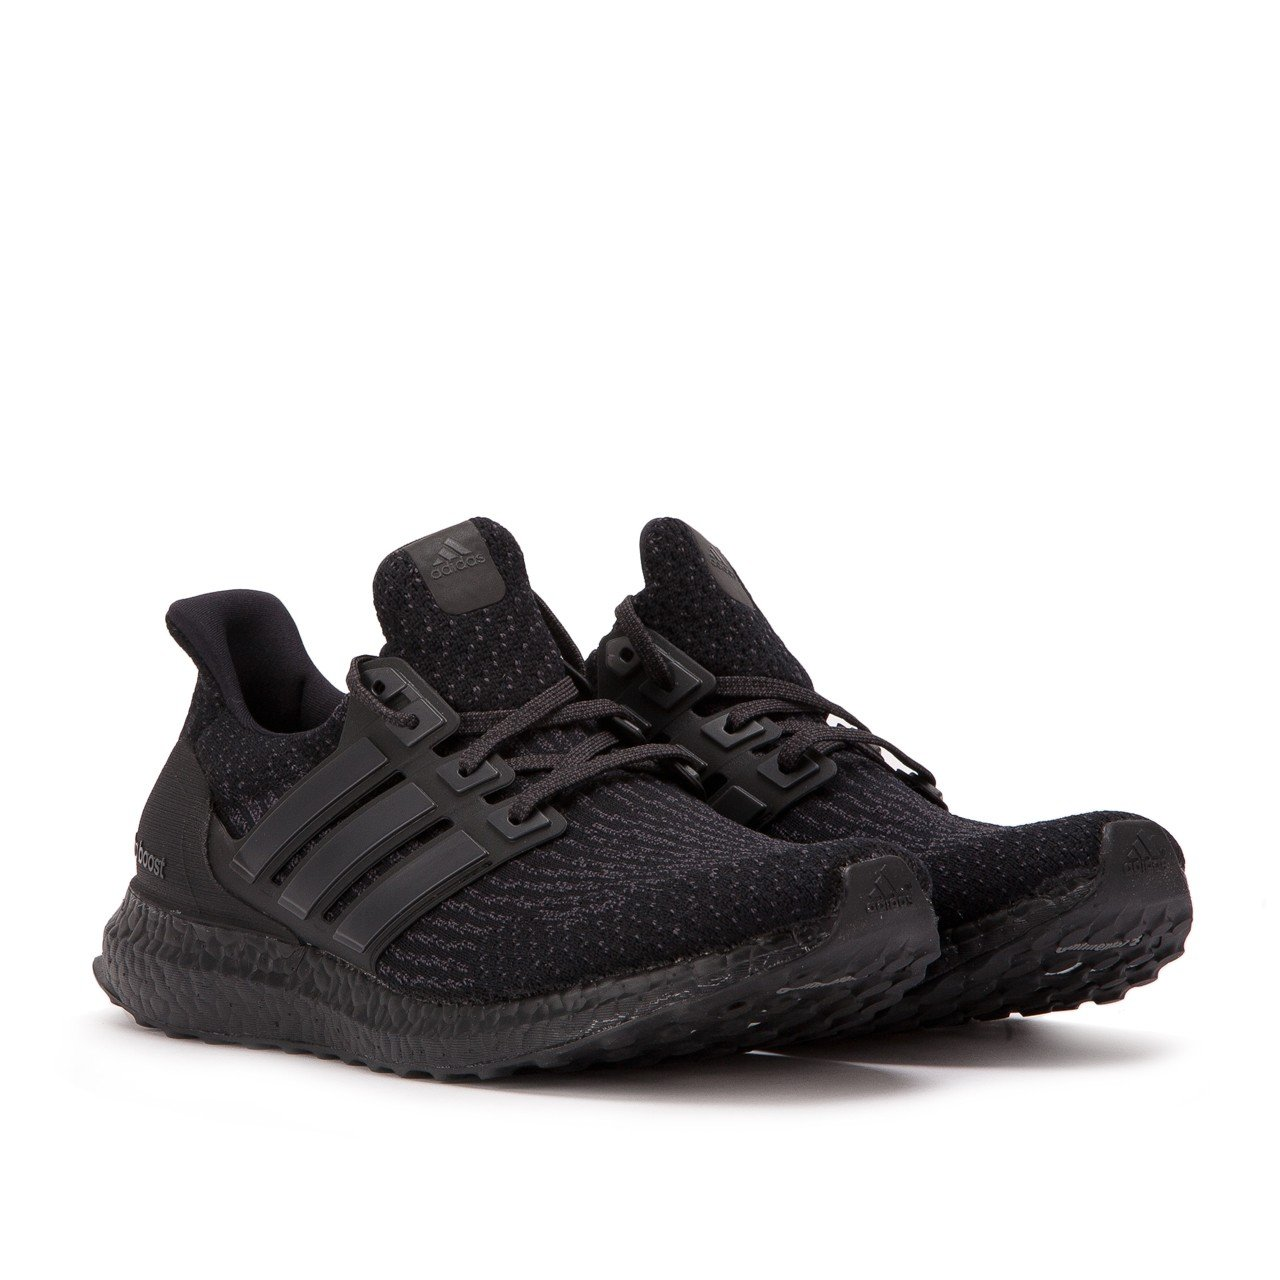 adidas Performance Men's Shoe Ultra Boost M Running Shoe Men's B01MY2DC6B 6 D(M) US|Black/Utility Black 32fc21